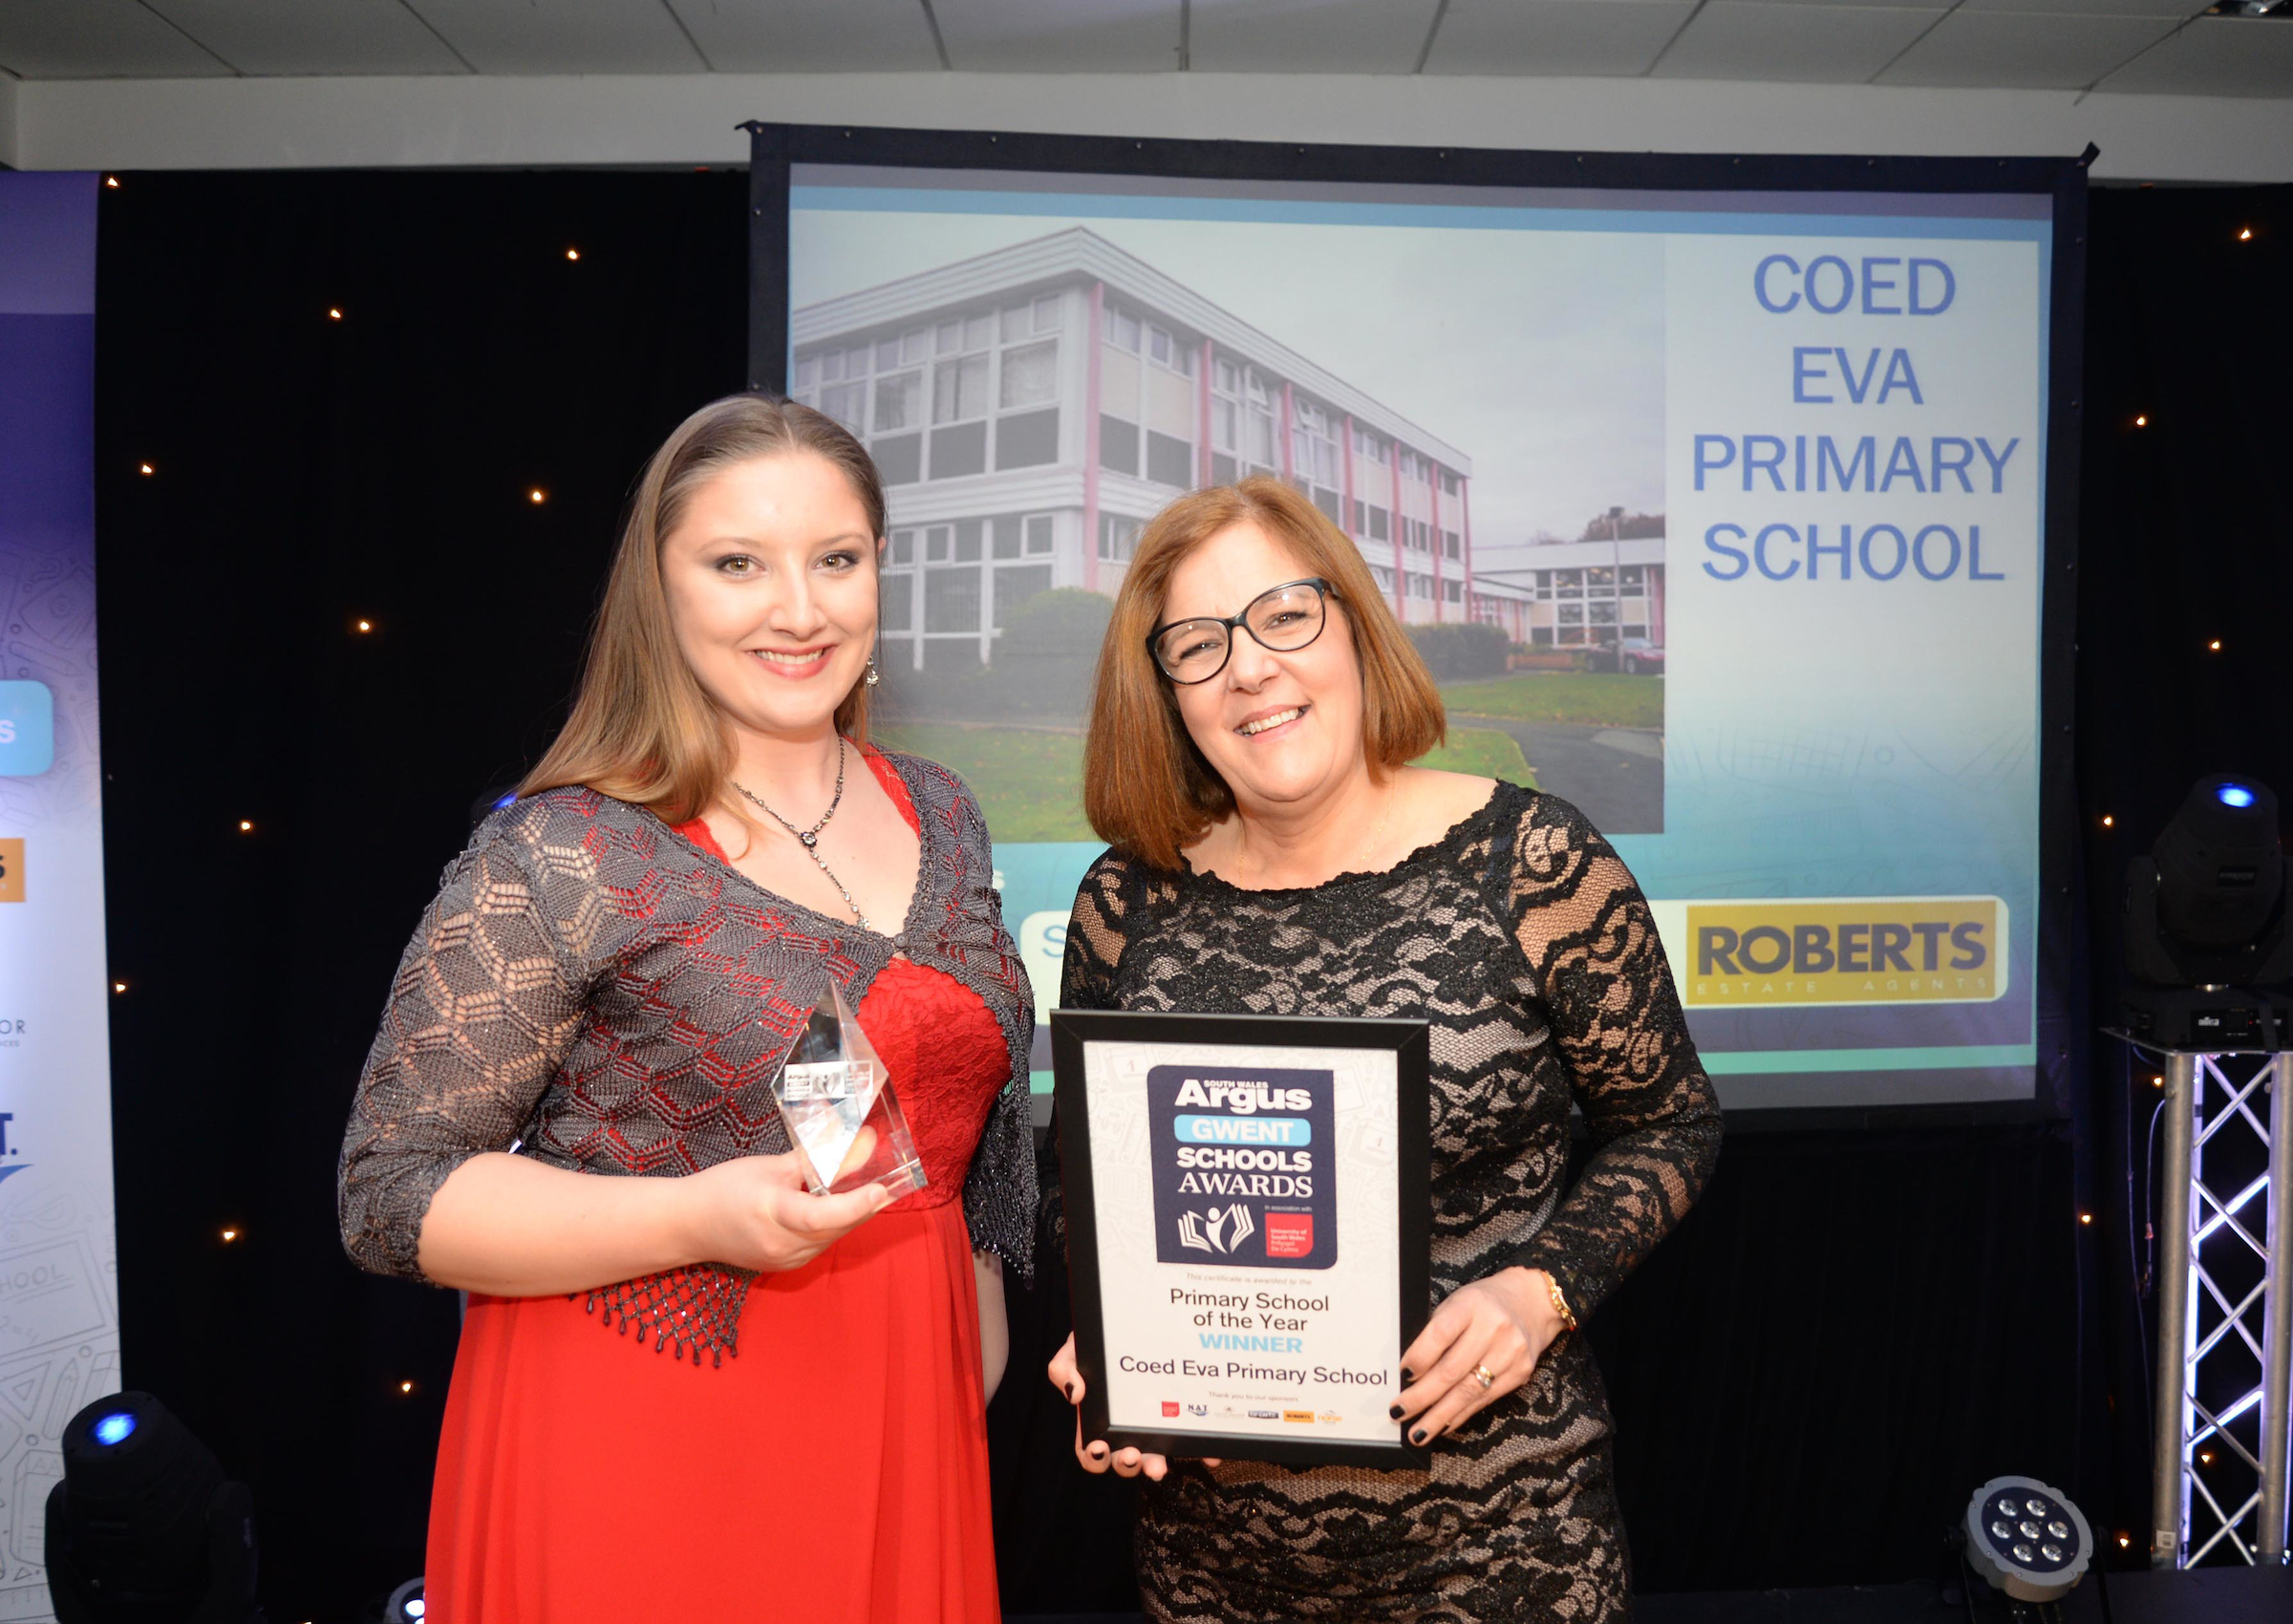 ELATED: The winner of the the Primary School of the Year was Coed Eva Primary School